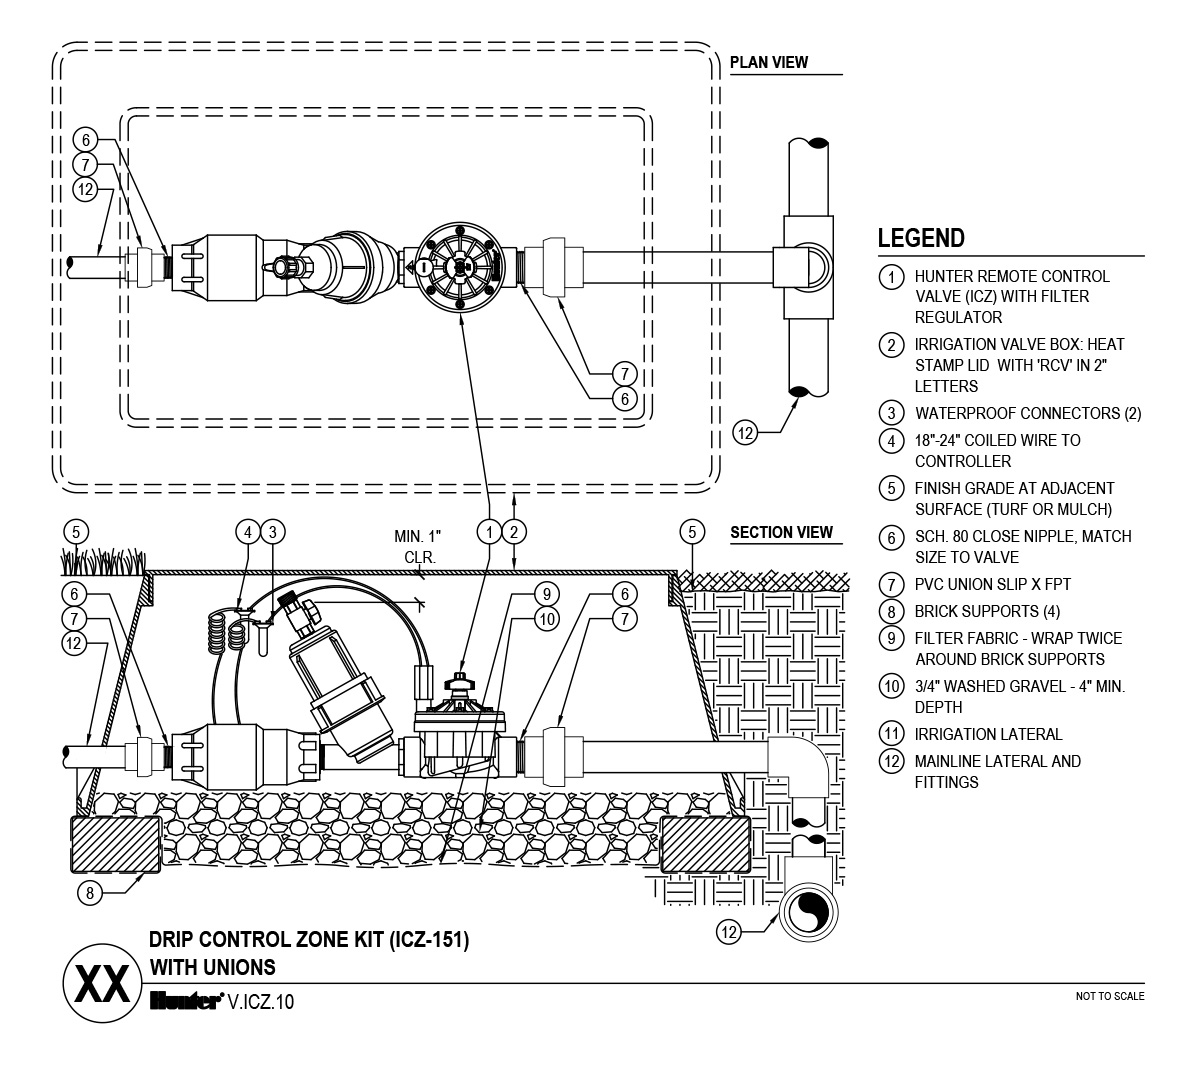 CAD - Drip Control Zone Kit (ICZ-151) with unions